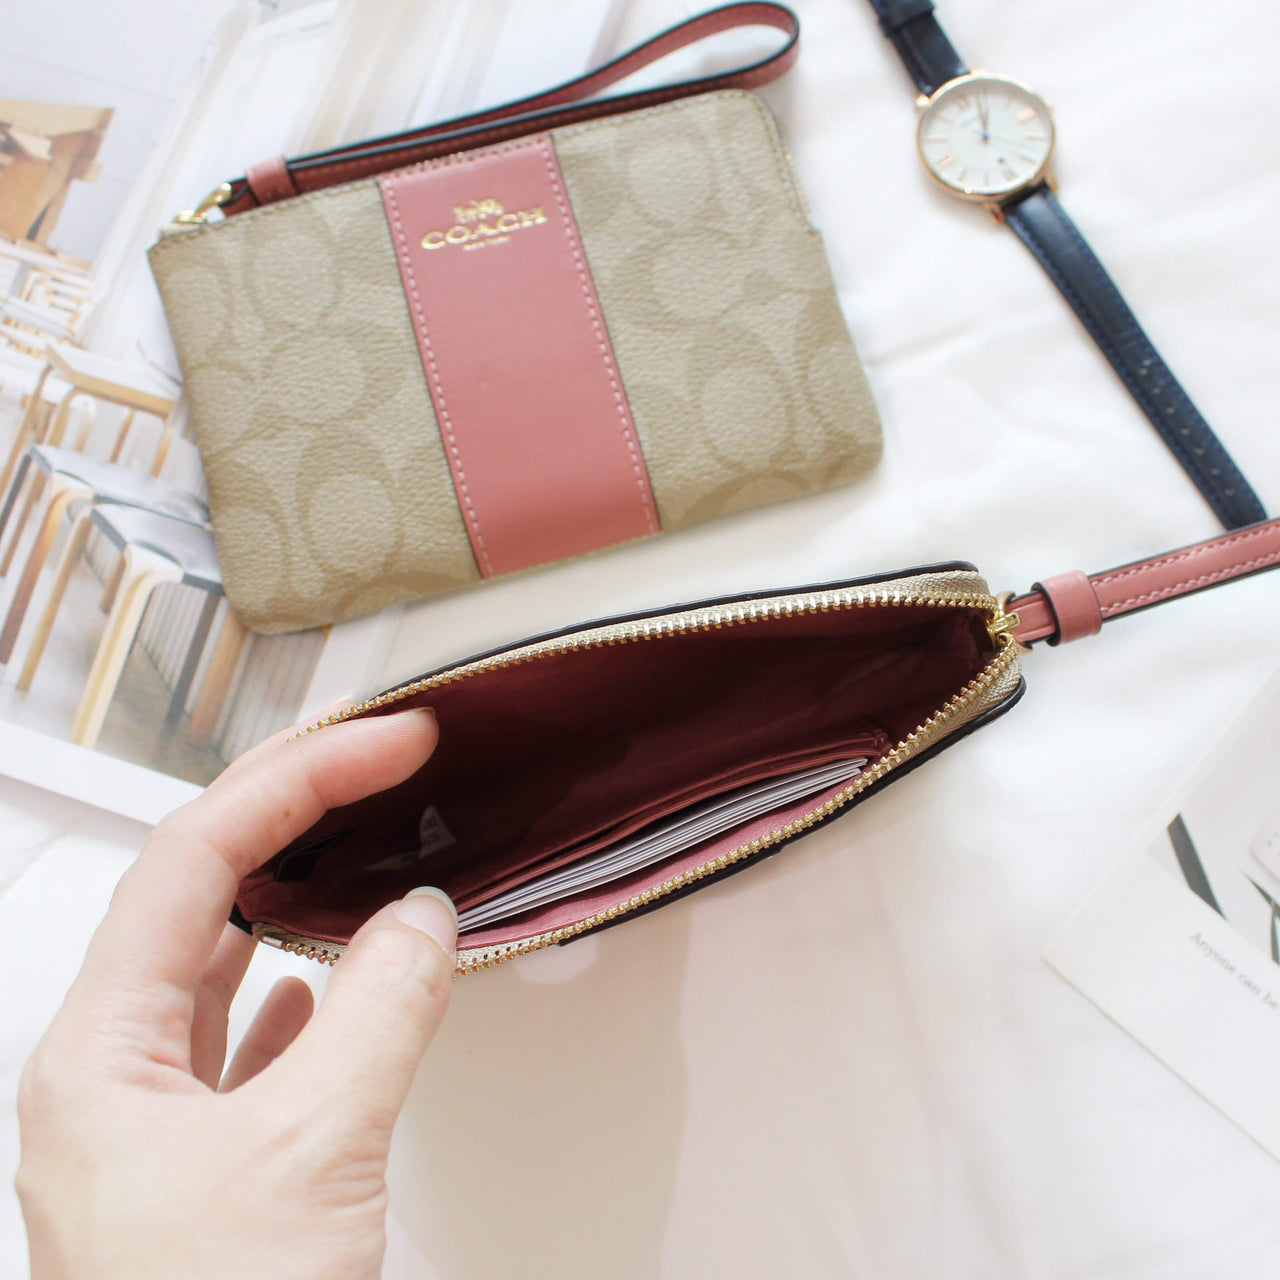 COACH SIGNATURE PVC LEATHER CORNER ZIP WRISTLET - LovelyMadness Clothing Online Fashion Malaysia